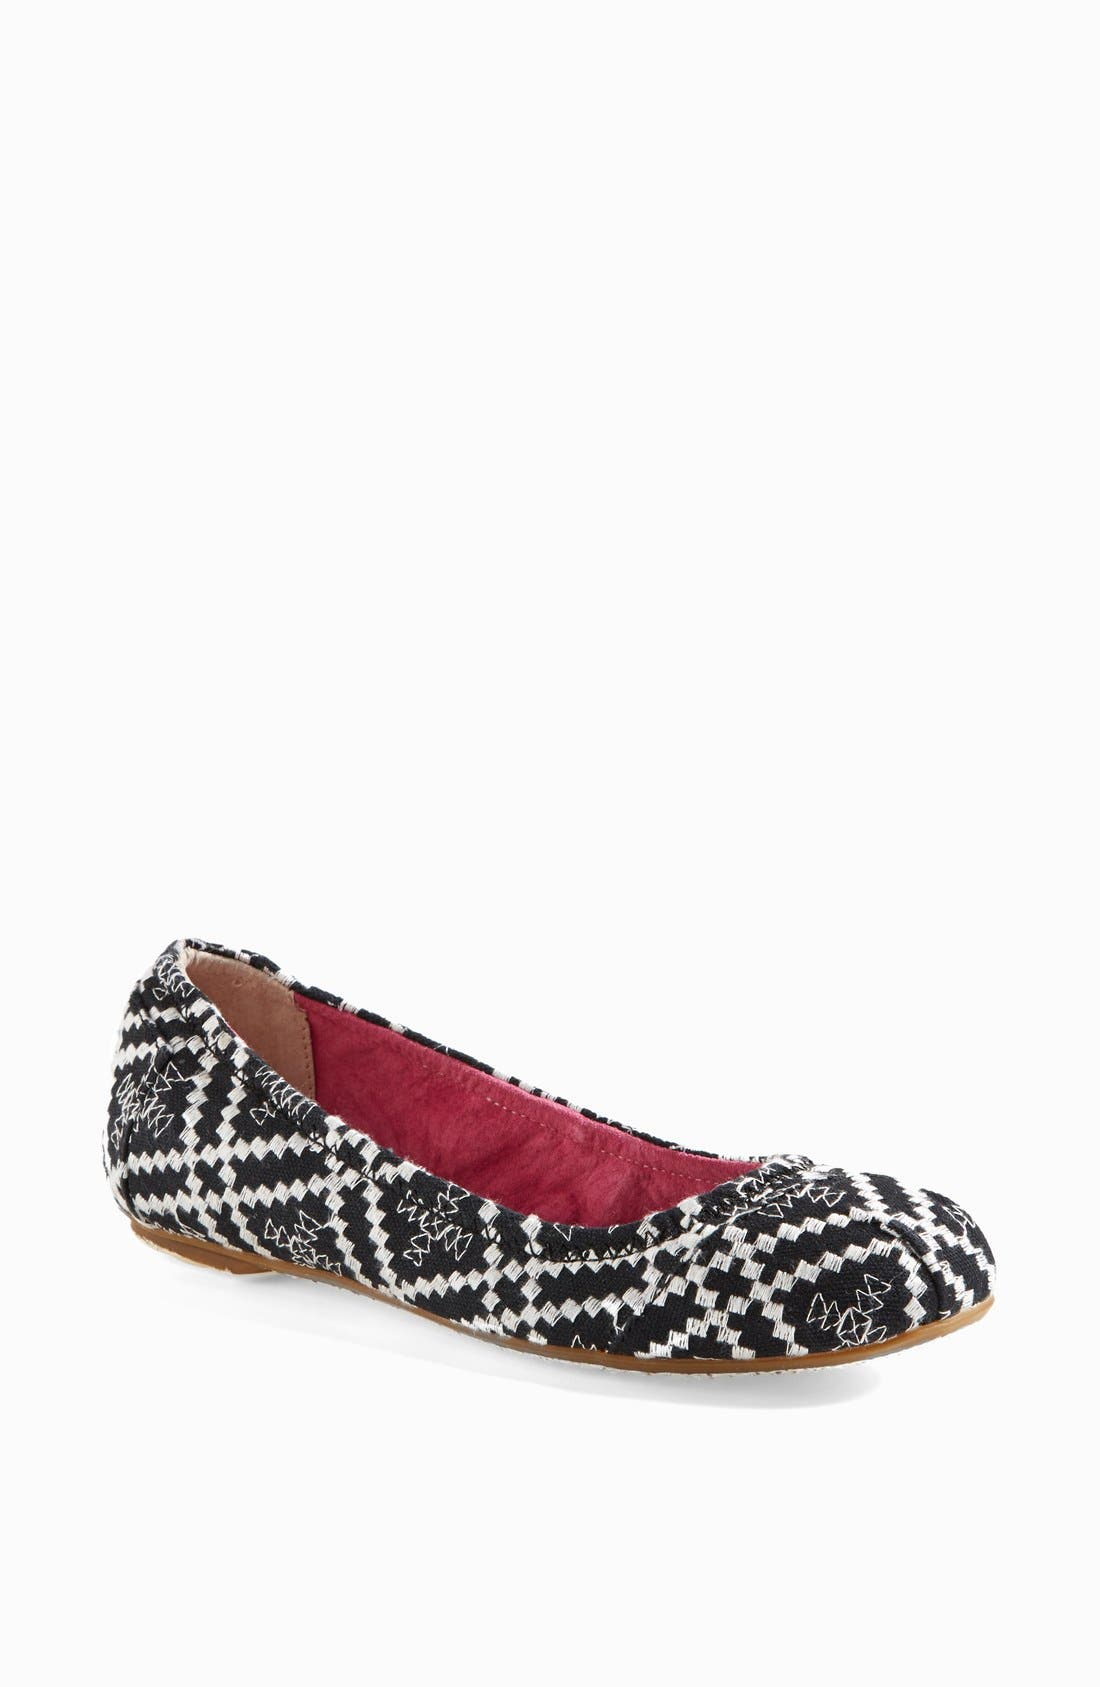 Alternate Image 1 Selected - TOMS Embroidered Ballet Flat (Women)